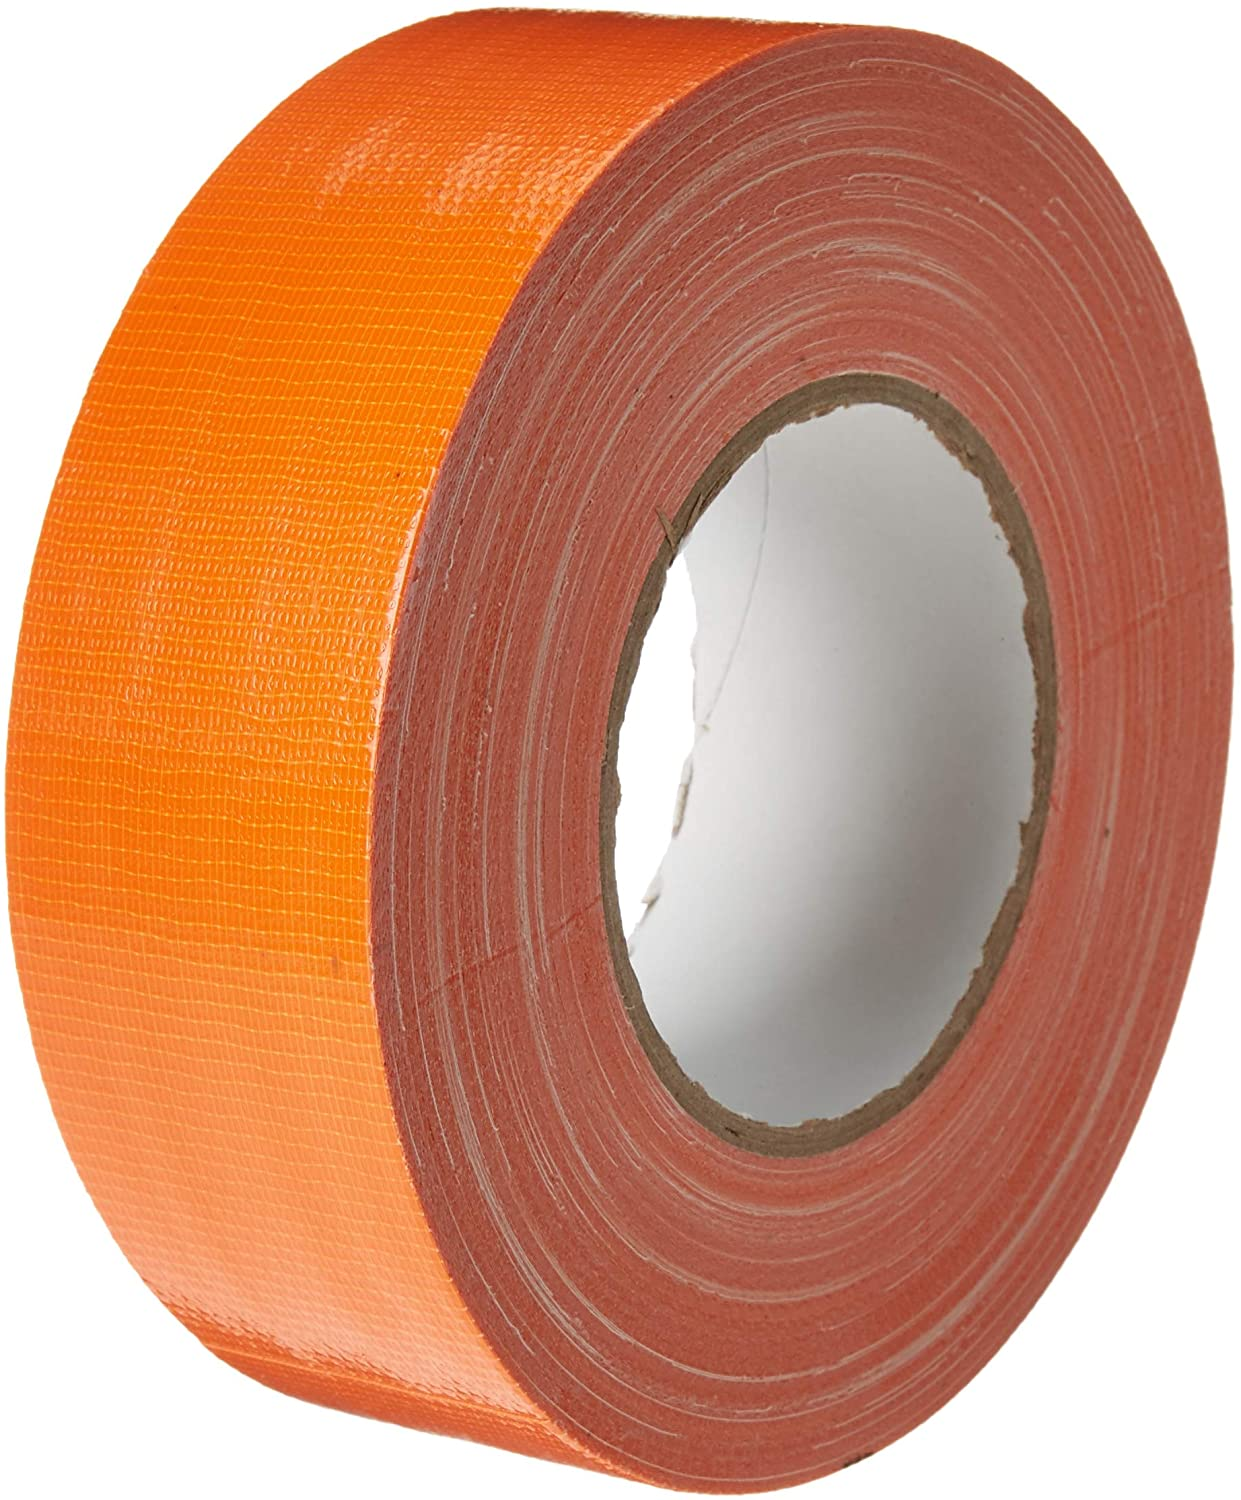 T.R.U. CDT-36 Industrial Grade Duct Tape. Waterproof and UV Resistant. Multiple Colors Available. (Racing Orange, 2 in.)